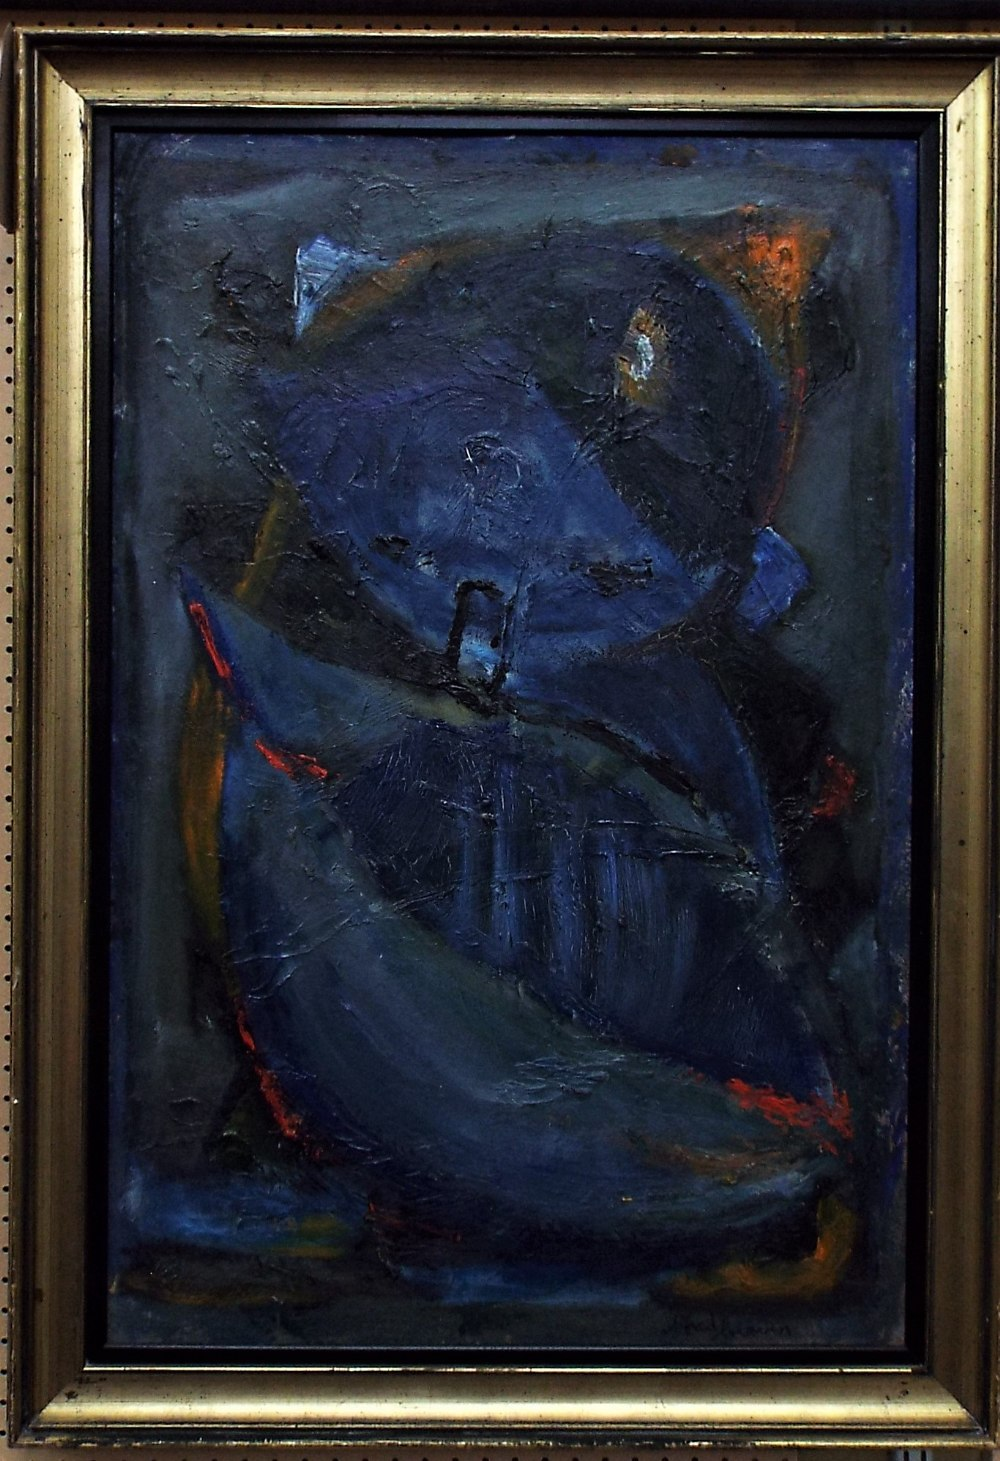 Lot 154 - Alfred? - Abstract study with thick impasto of blue red and orange, indistinctly signed, oil on